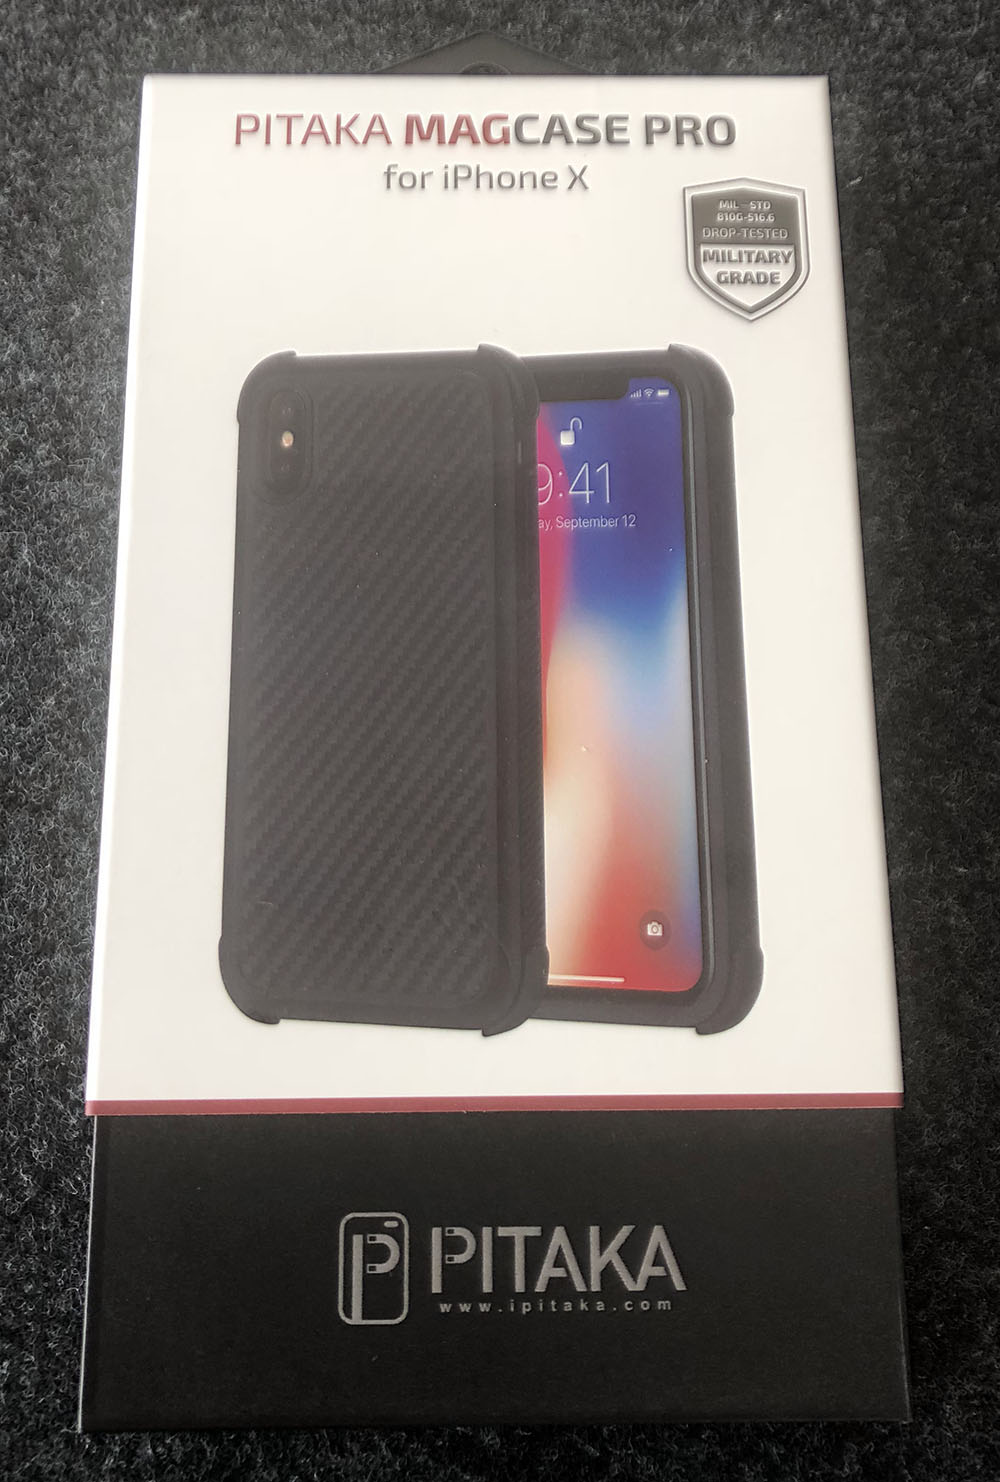 online store 16c06 5ebaa Pitaka Magcase Pro iPhone X case review – The Gadgeteer